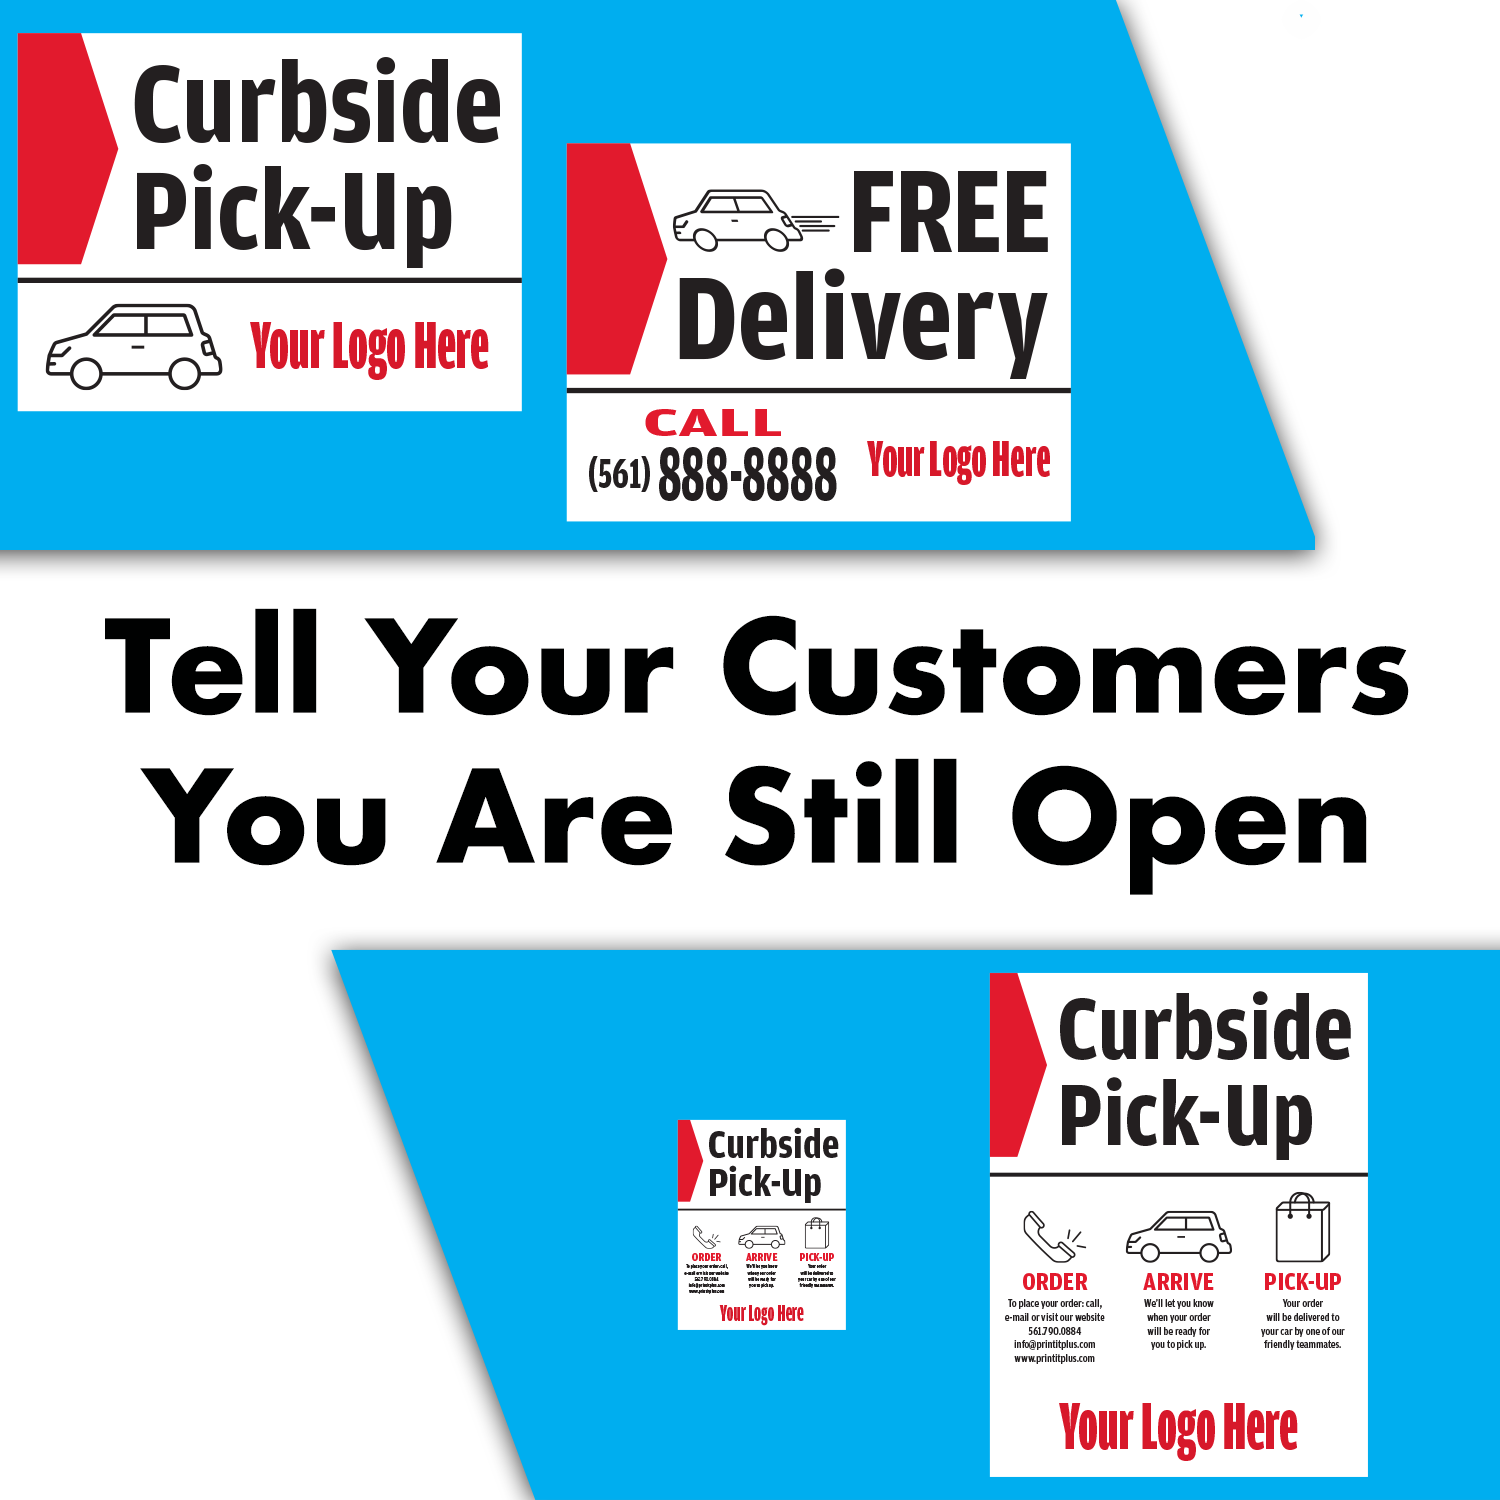 Tell Your Customers You Are Still Open